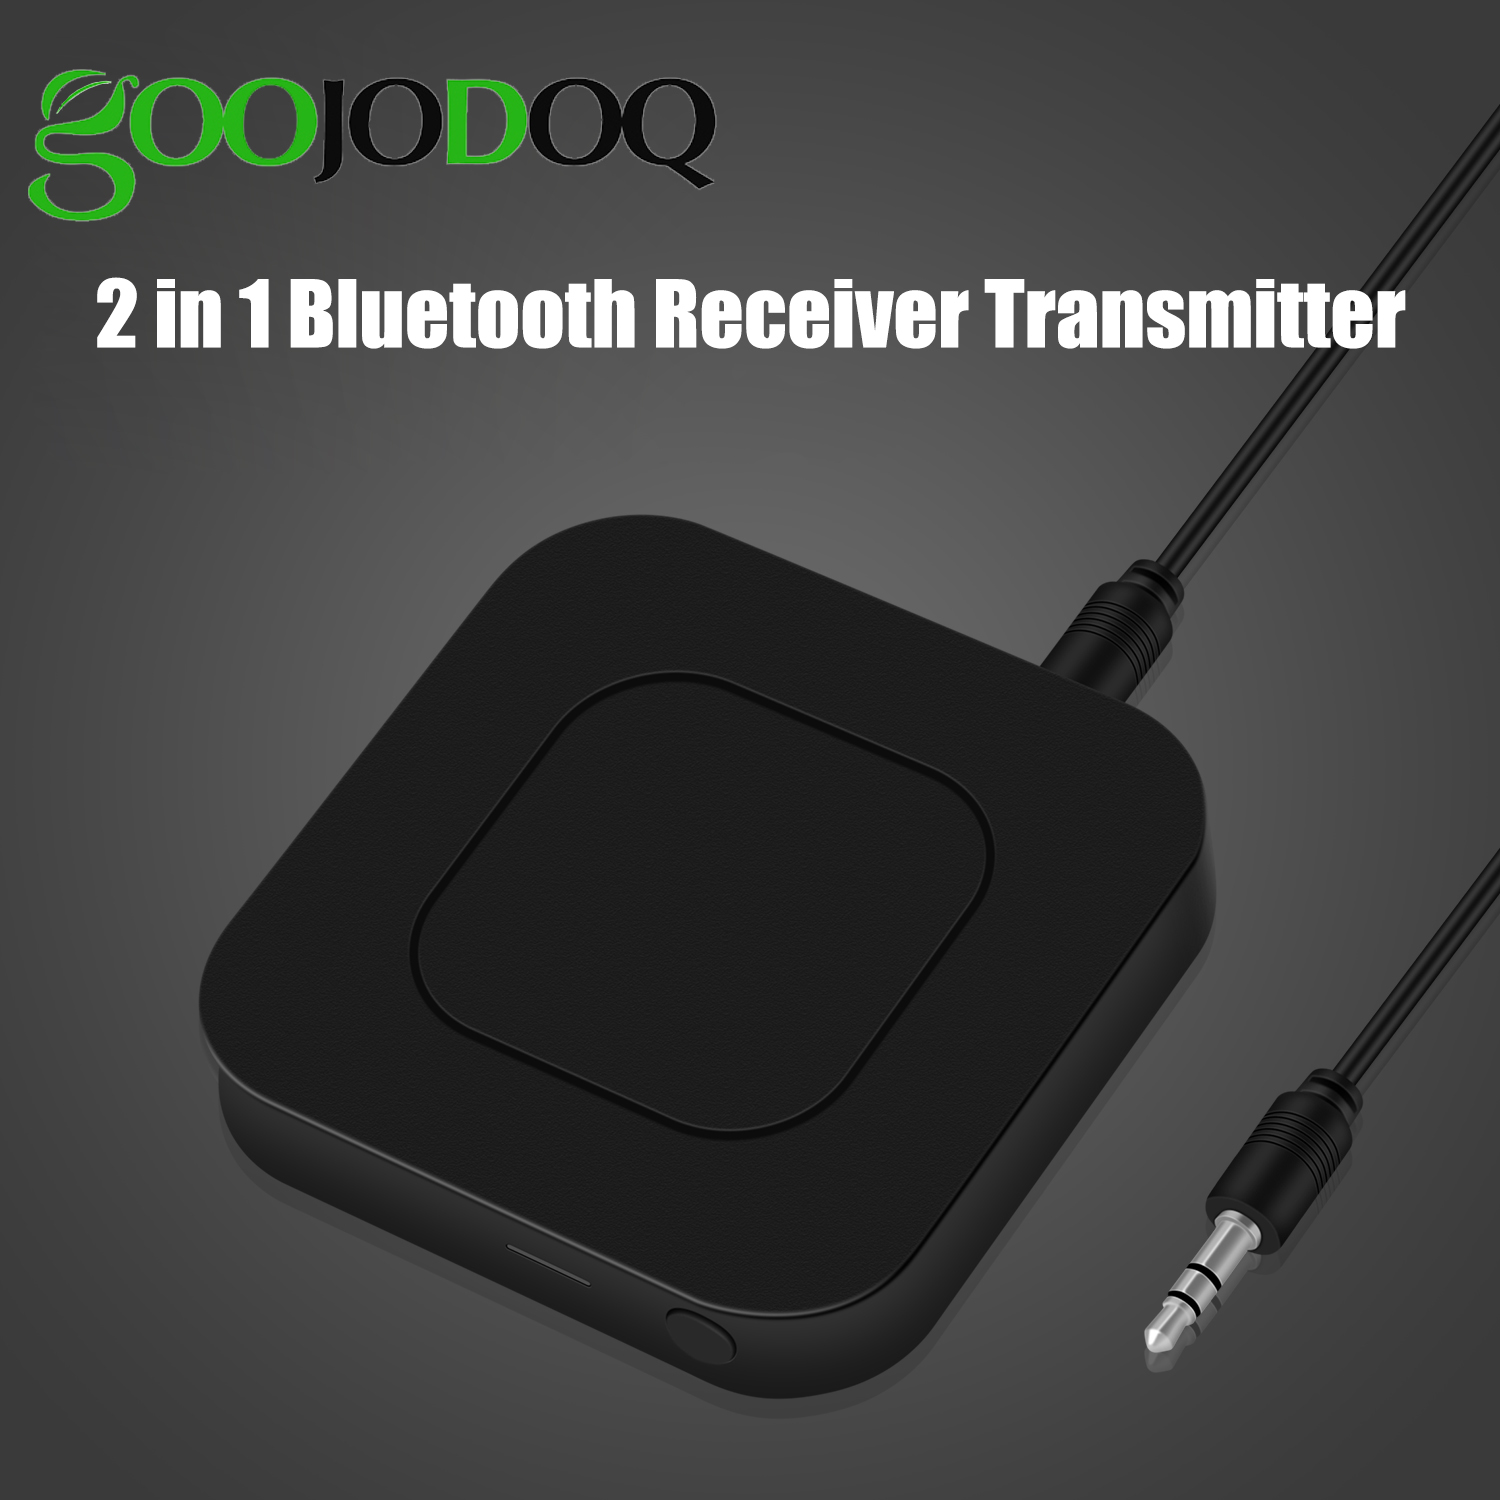 2 in 1 Wireless Bluetooth 4.2 Audio Transmitter Receiver 3.5mm Aux Adapter For TV Home Stereo System PC Earphone Speaker-in USB Bluetooth Adapters/Dongles from Computer & Office